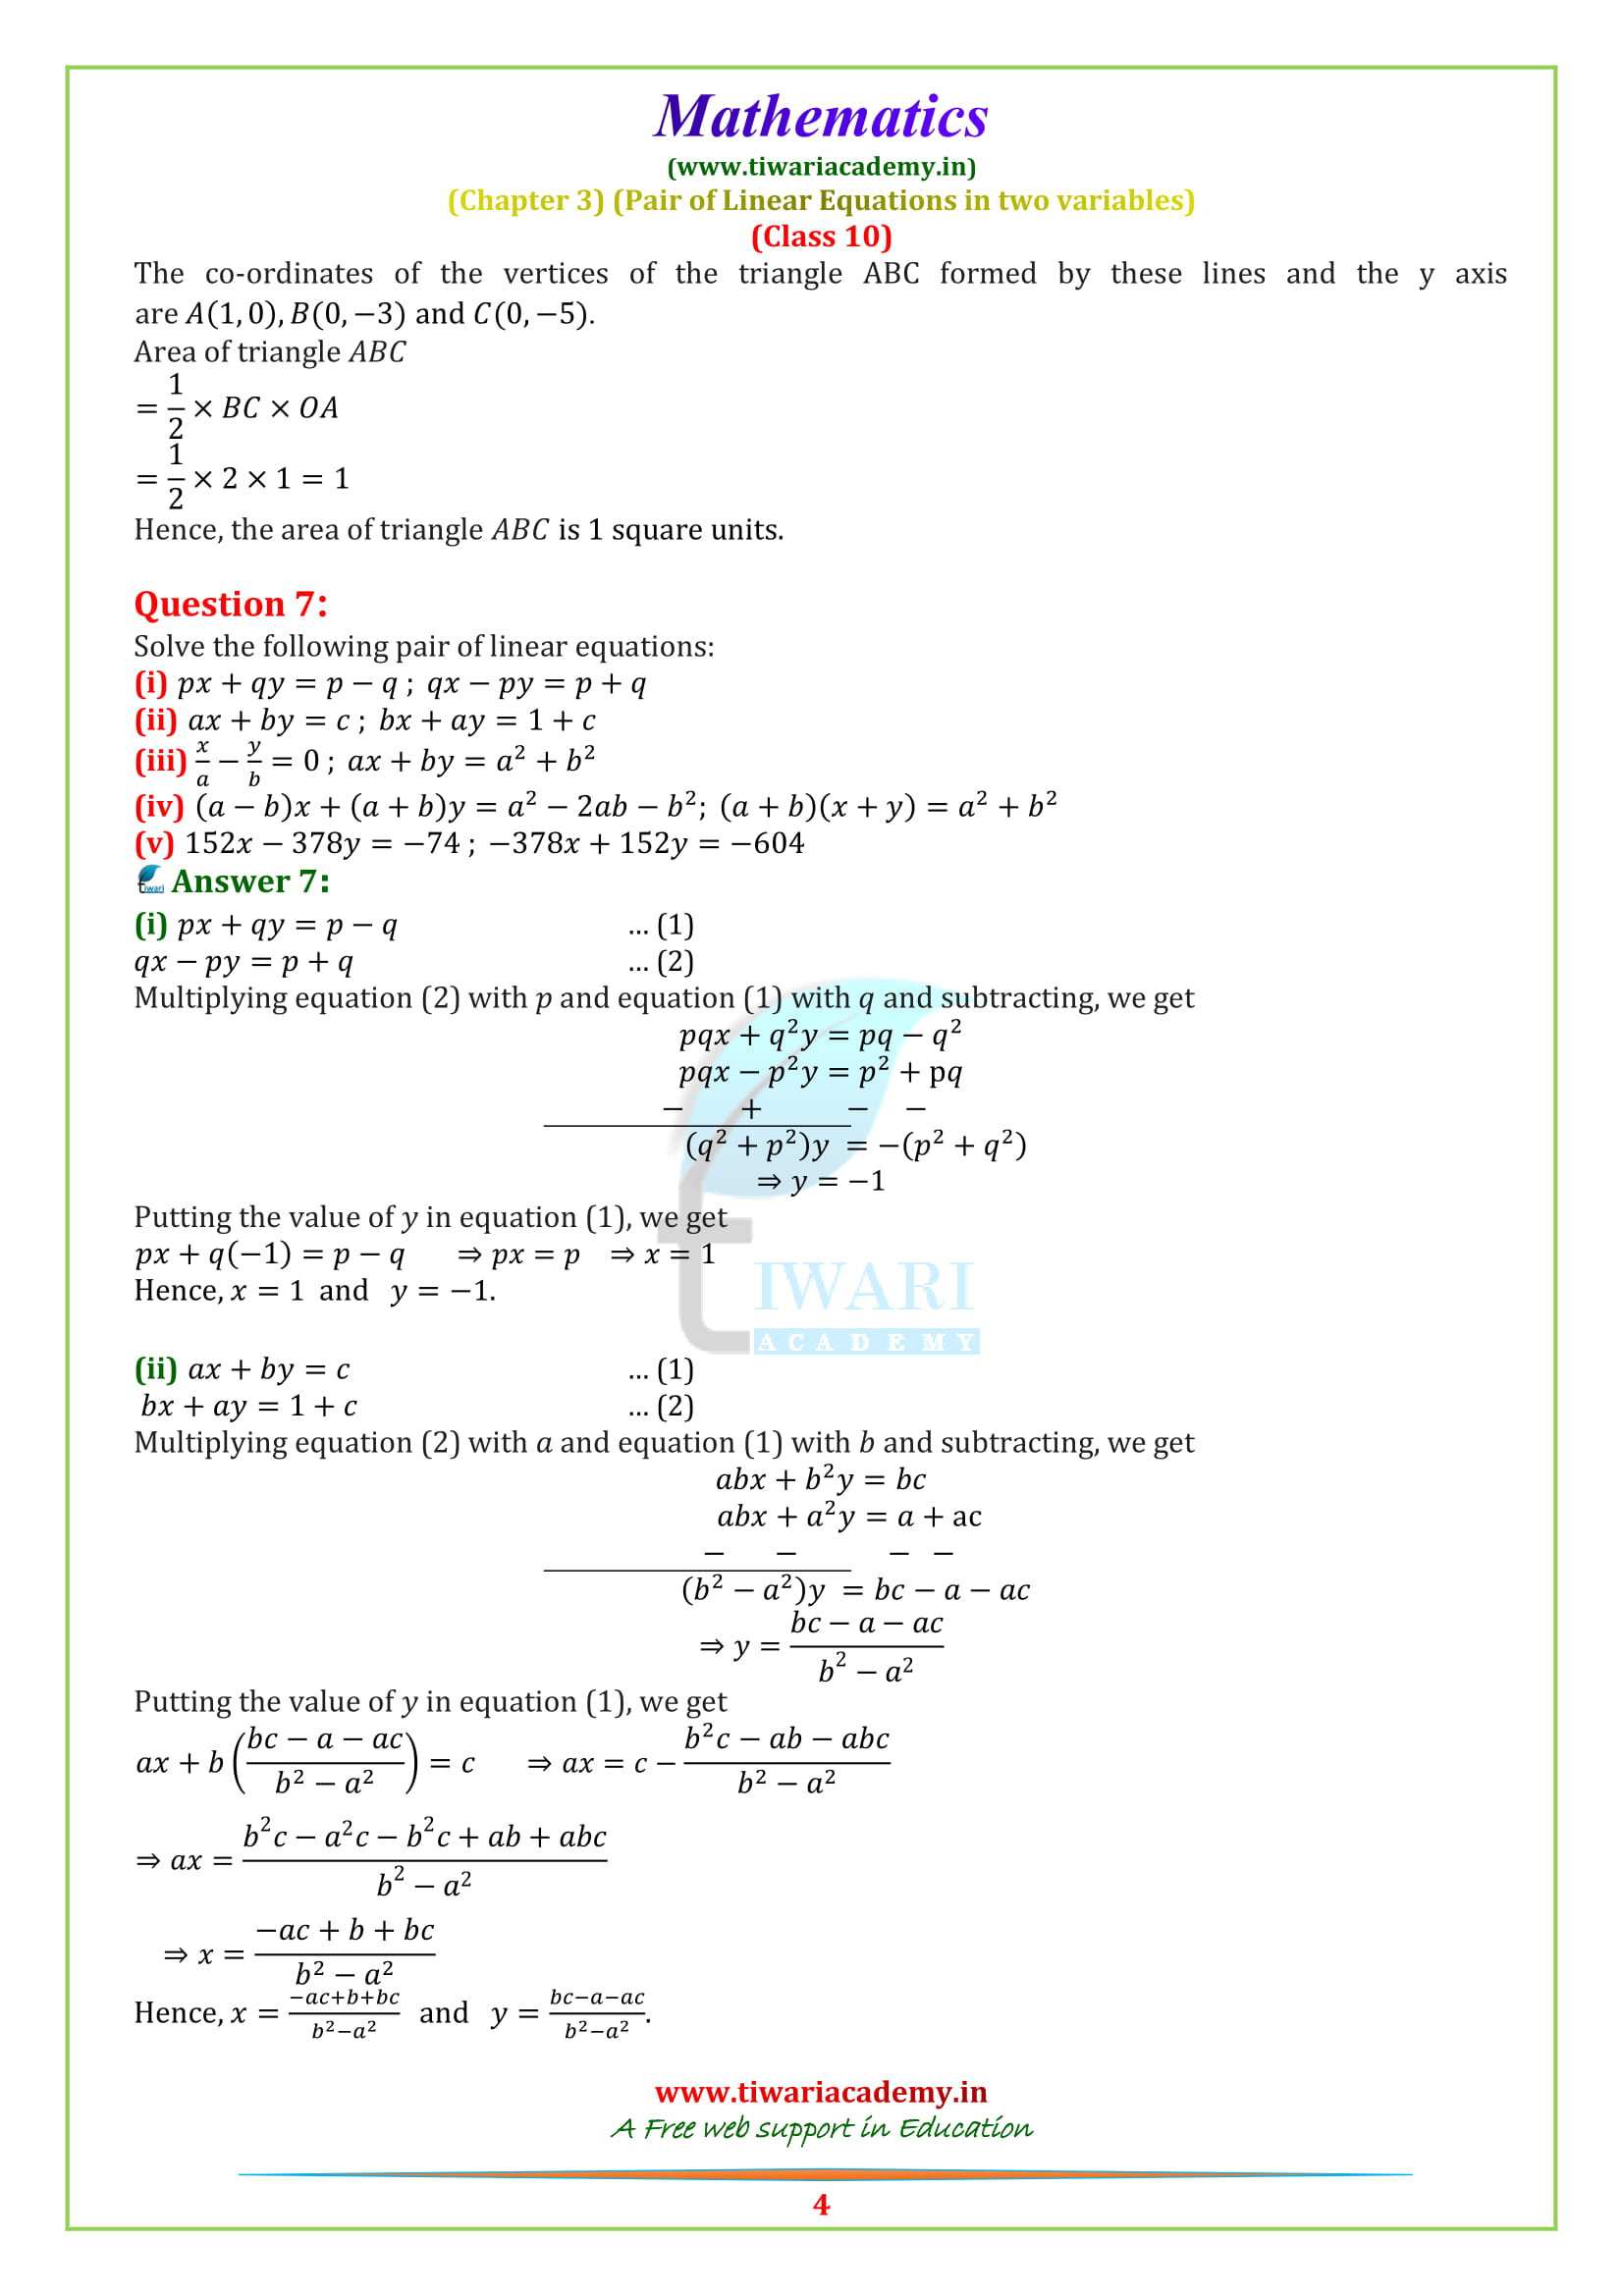 10 Maths optional exercise 3.7 solutions question 4, 5, 6, 7